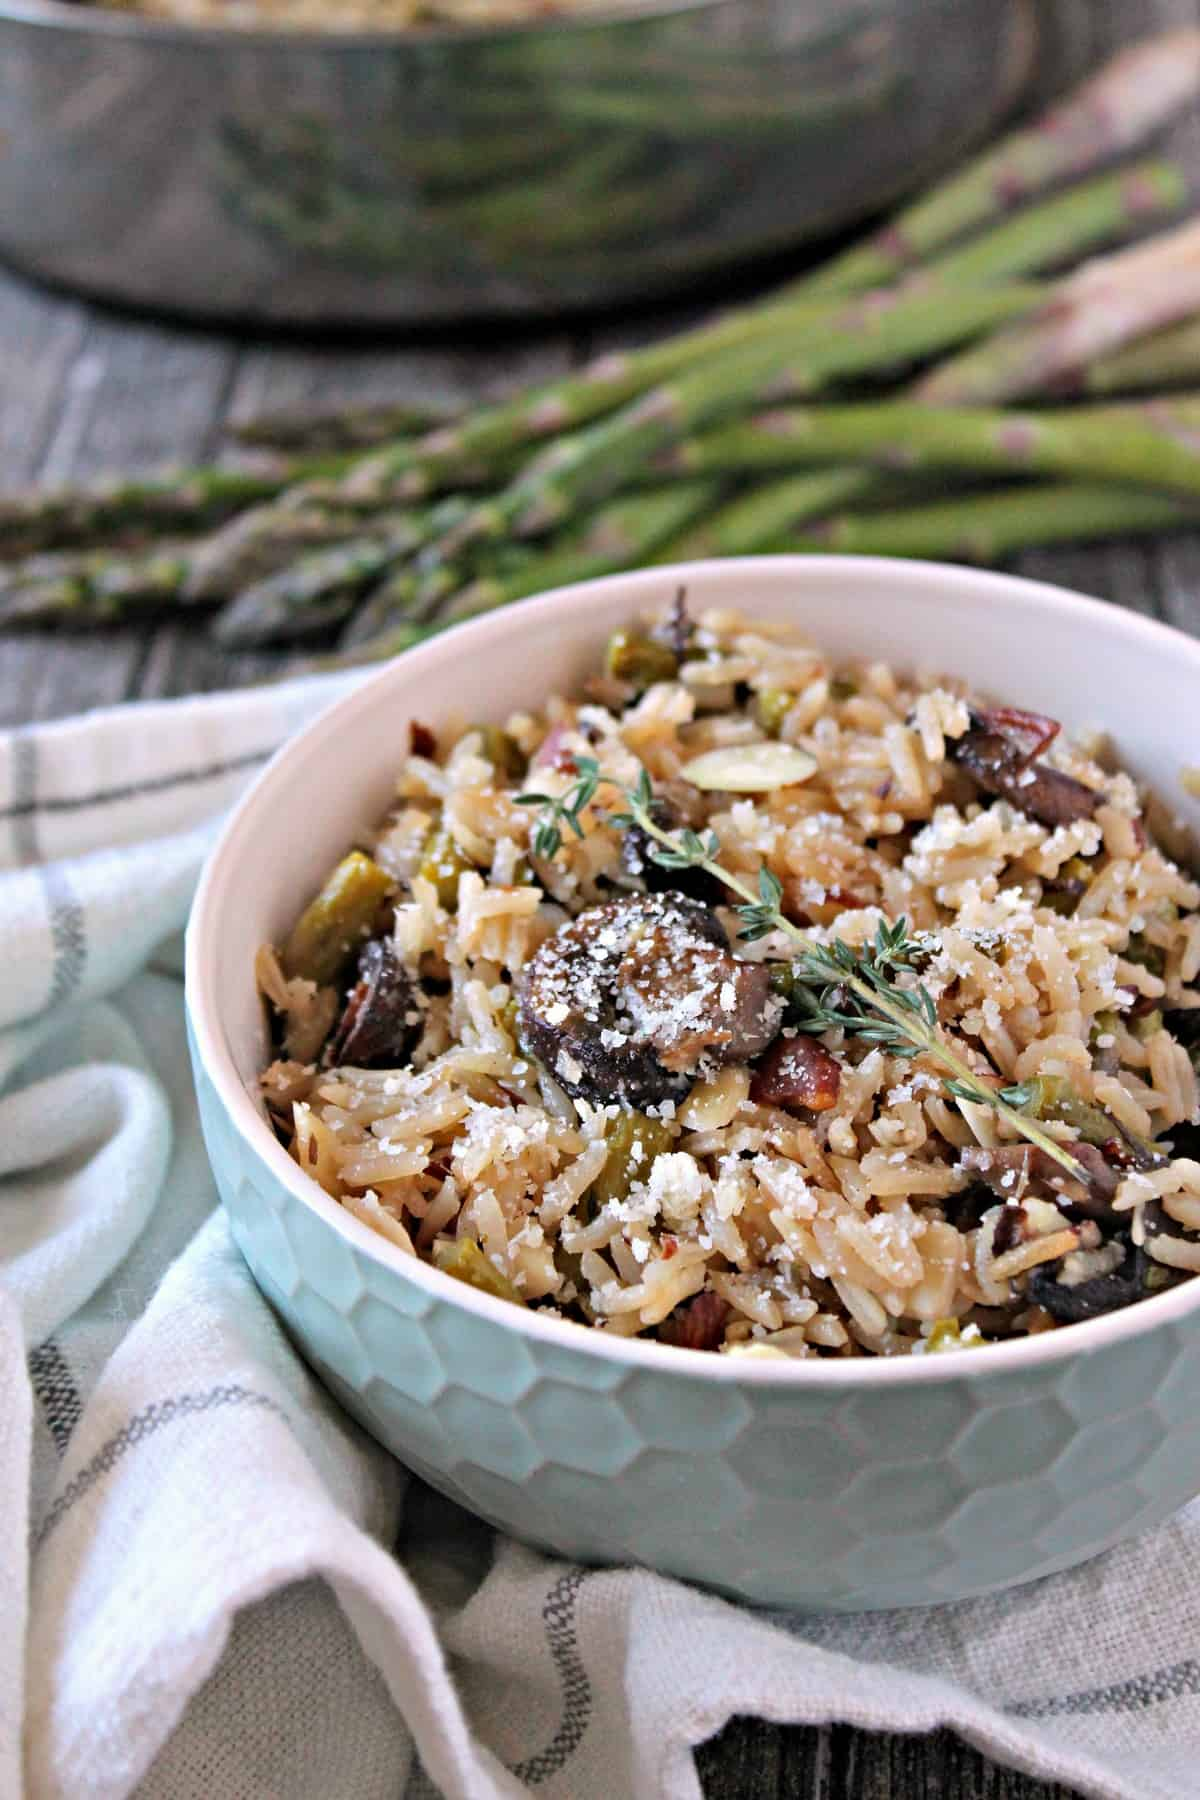 Baked Parmesan, Asparagus & Mushroom Rice Pilaf. This savory side dish starts on the stove top, then bakes to perfection in the oven, resulting in perfect rice every time. A great complement to spring meals!